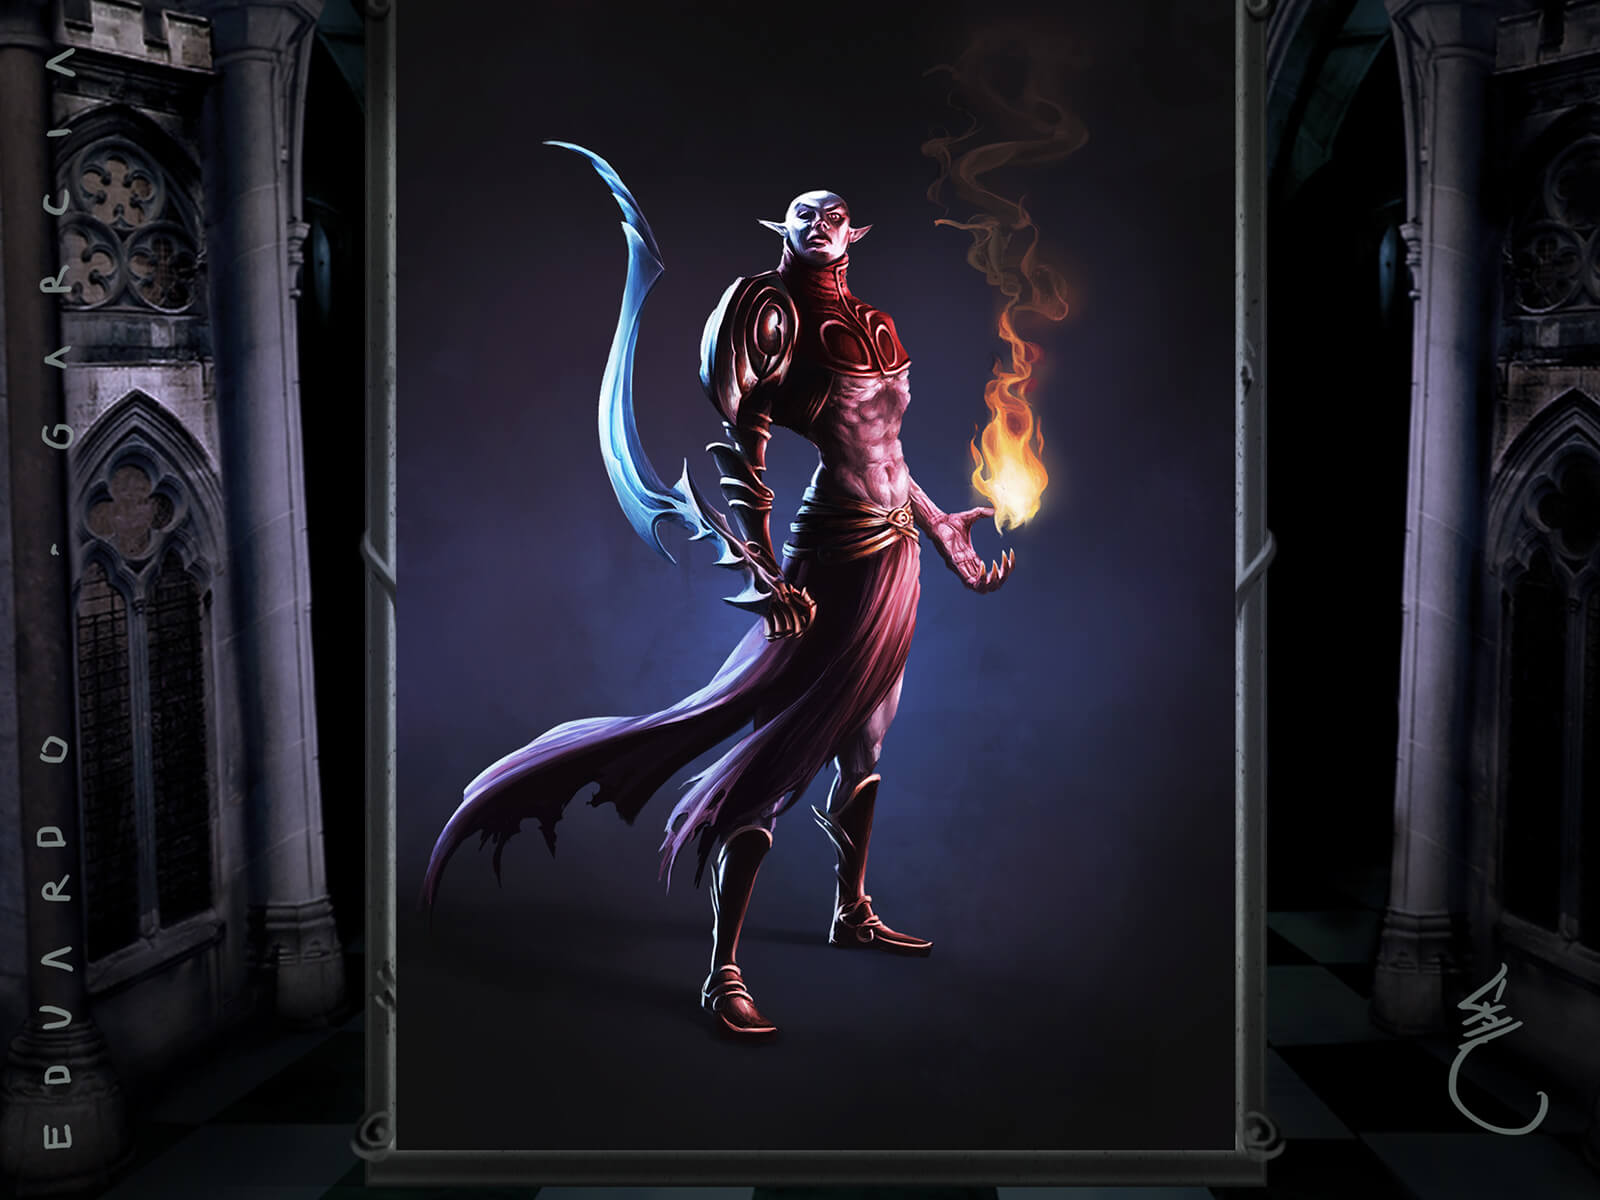 A demonic figure stands proudly with an ornate, curved blade in one hand, and a ball of flame in the other.